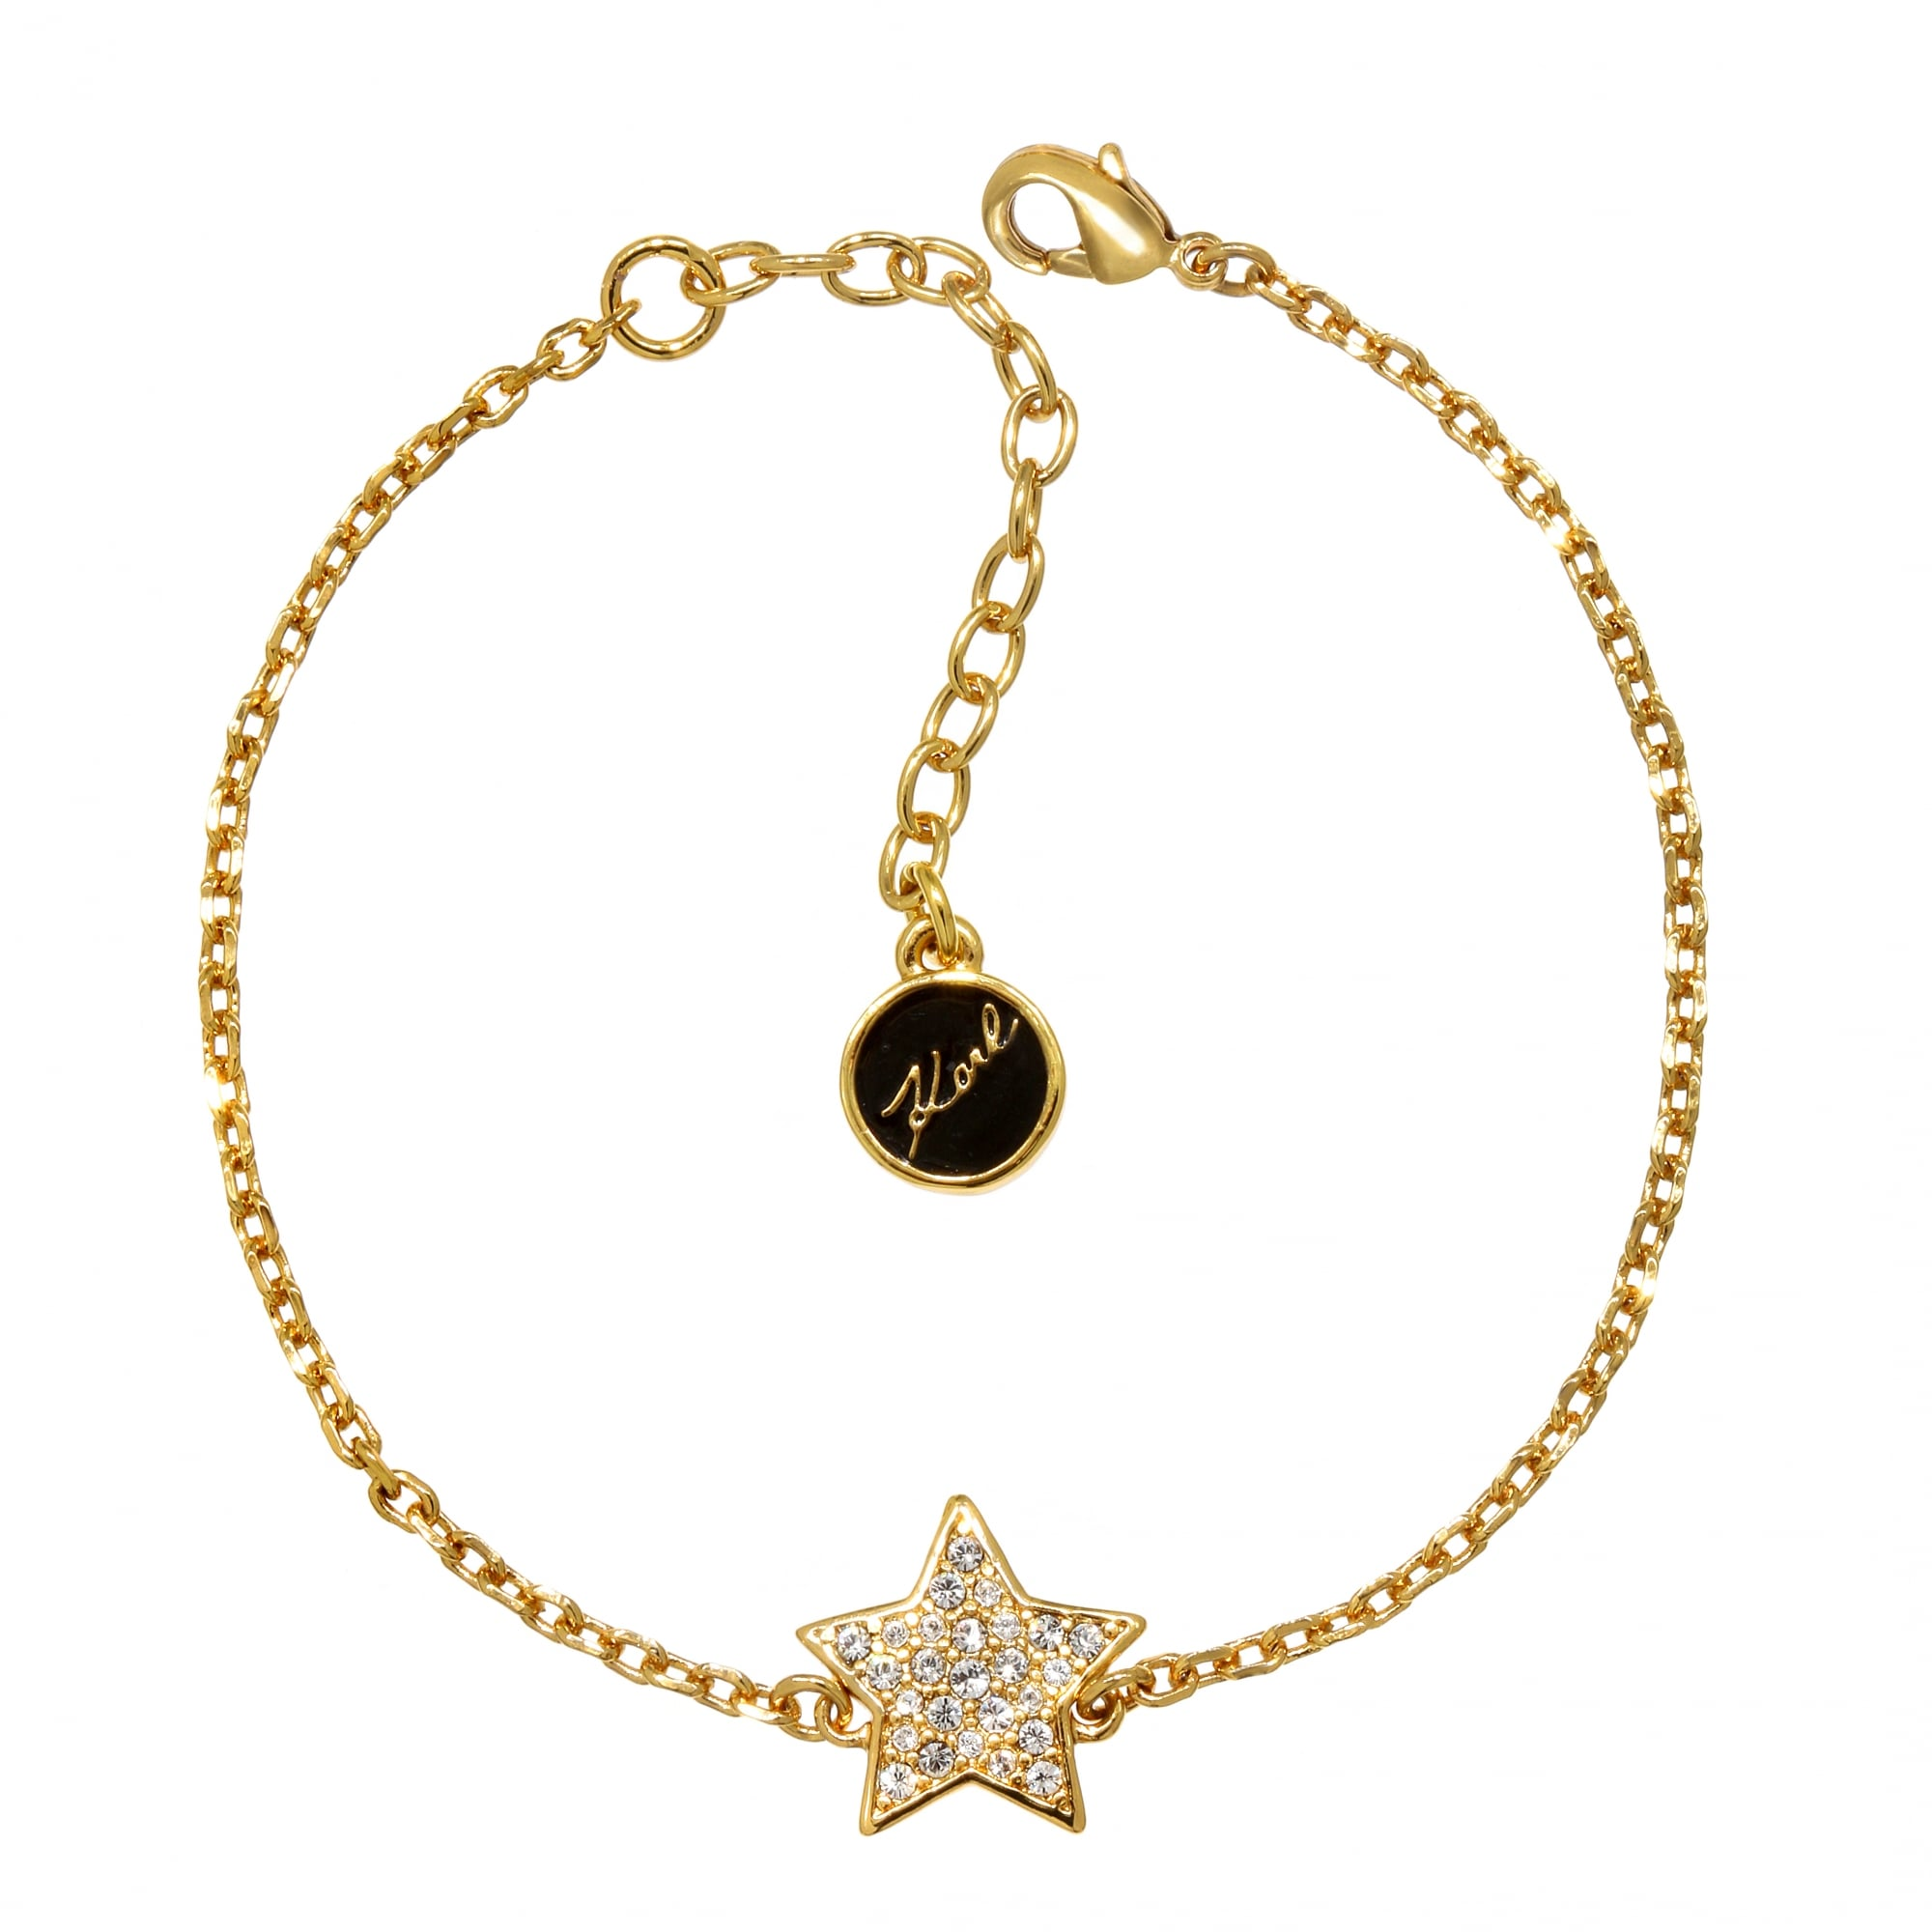 Karl Lagerfeld Gold Pave Star Bracelet Created With Swarovski® Crystals 6eaa7aef1